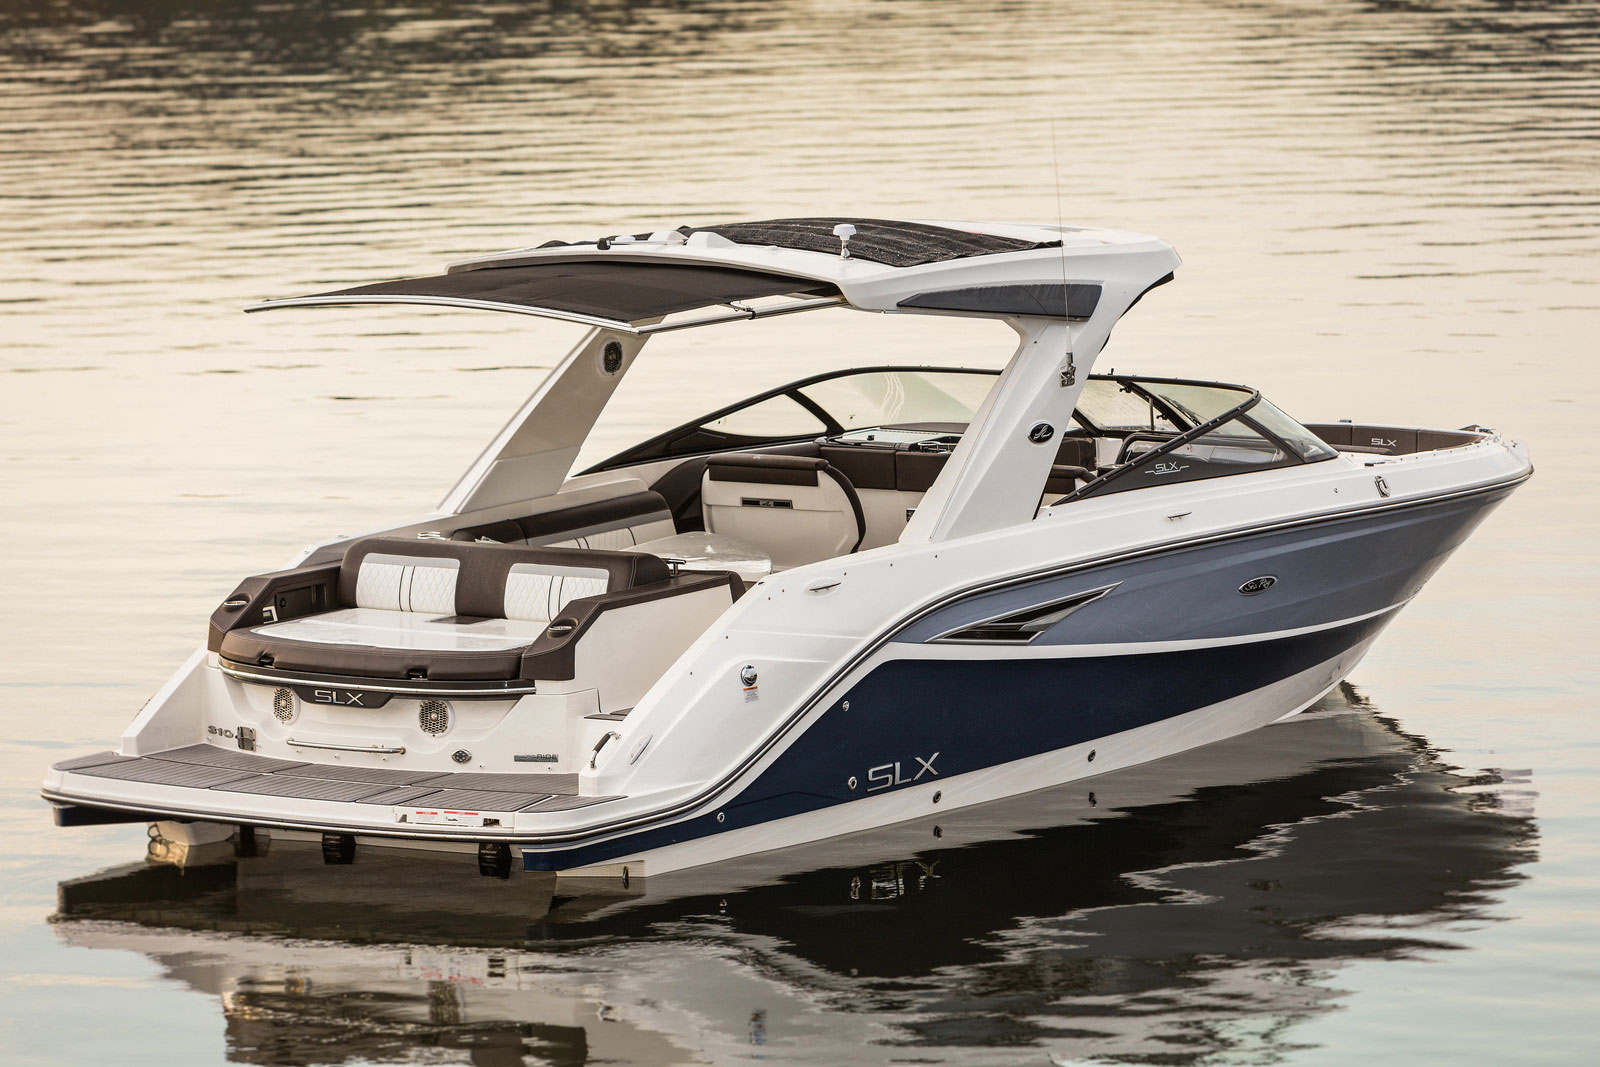 Sea ray slx series sureshade sea ray 310 slx web1 publicscrutiny Gallery